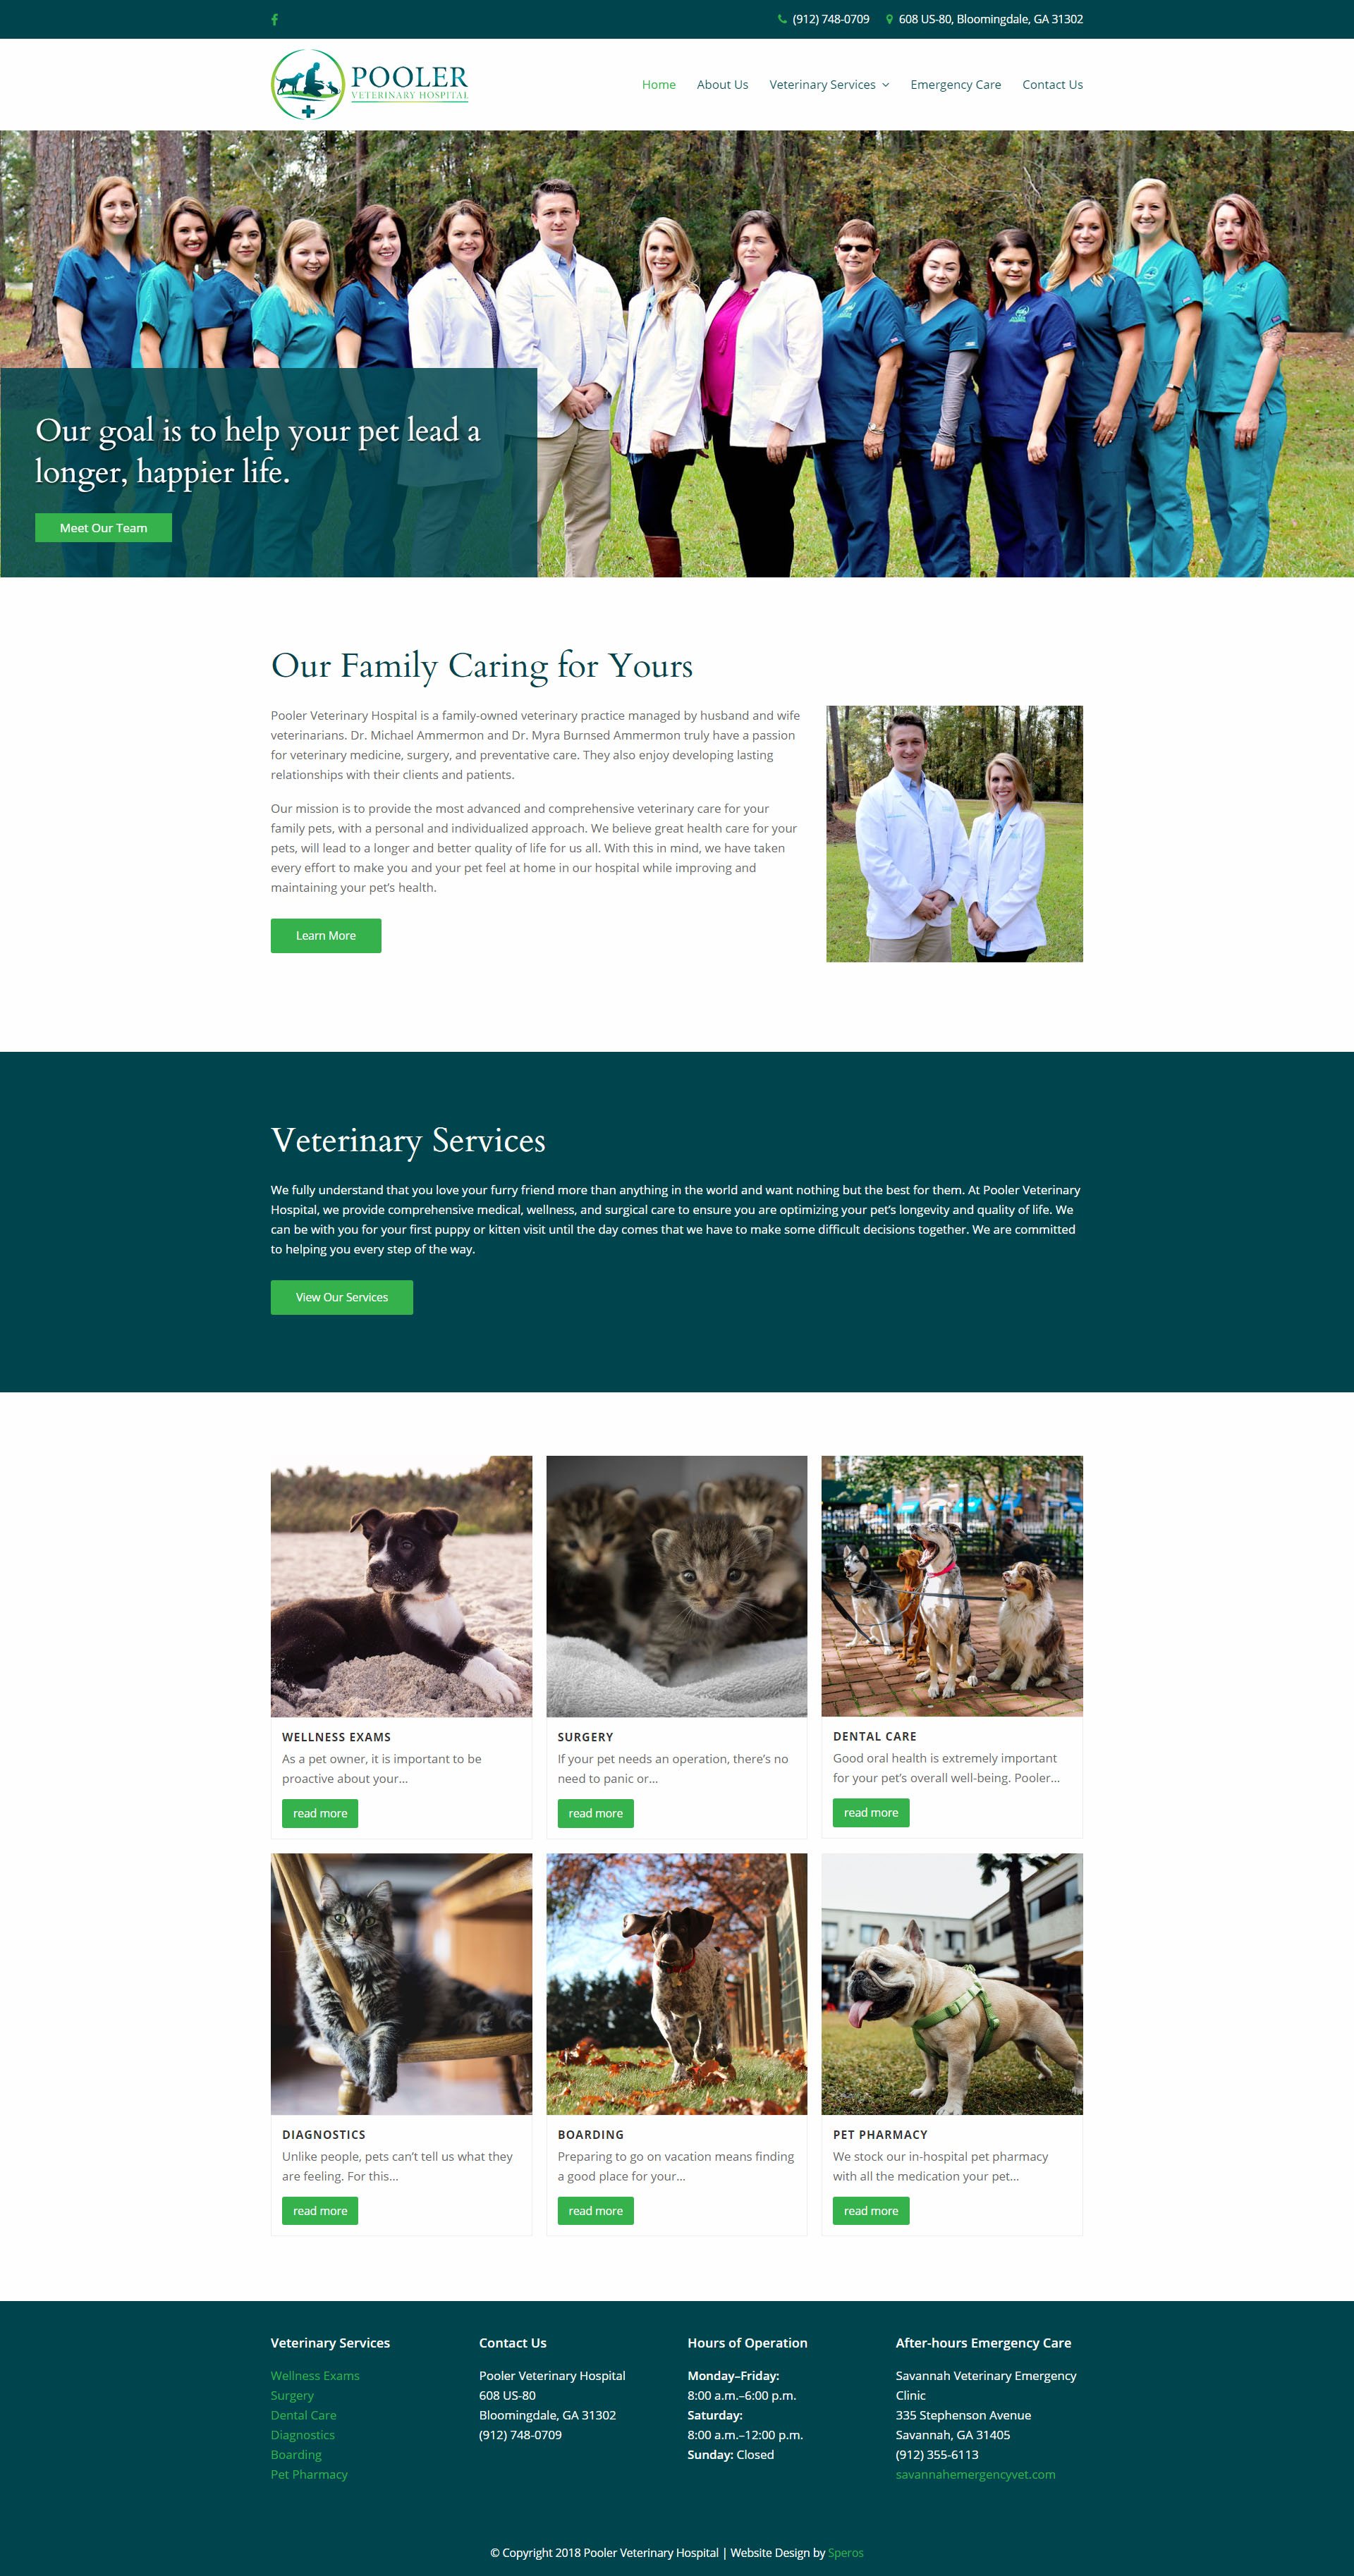 Pooler Veterinary Hospital Home Page - Website Design - Speros